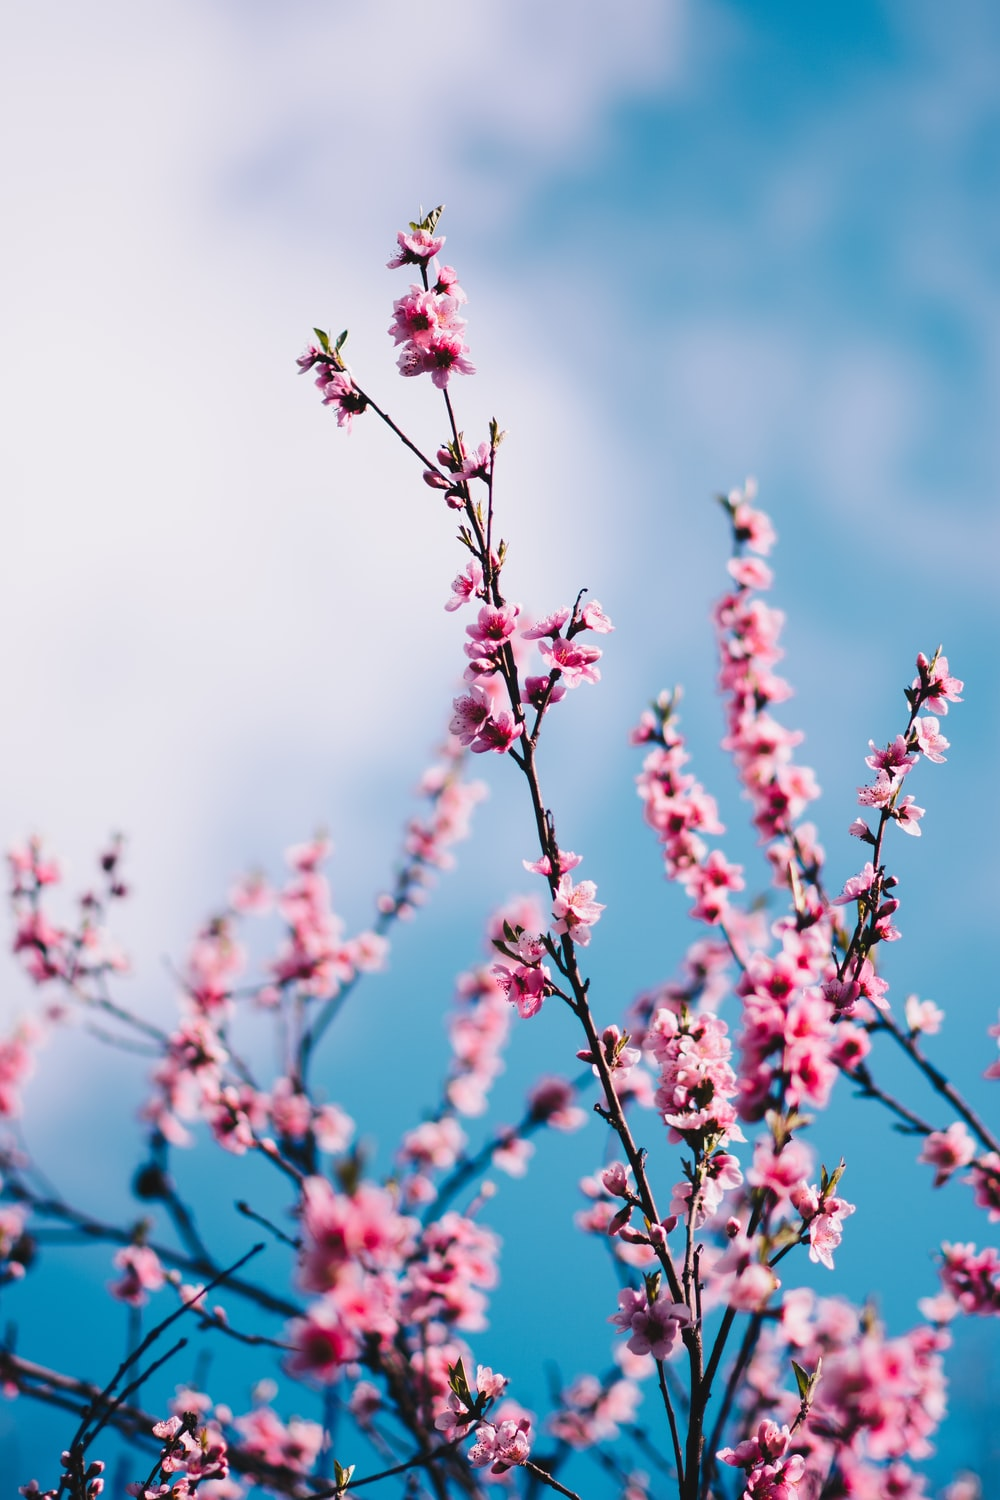 close-up photograph of pink cherry blossoms